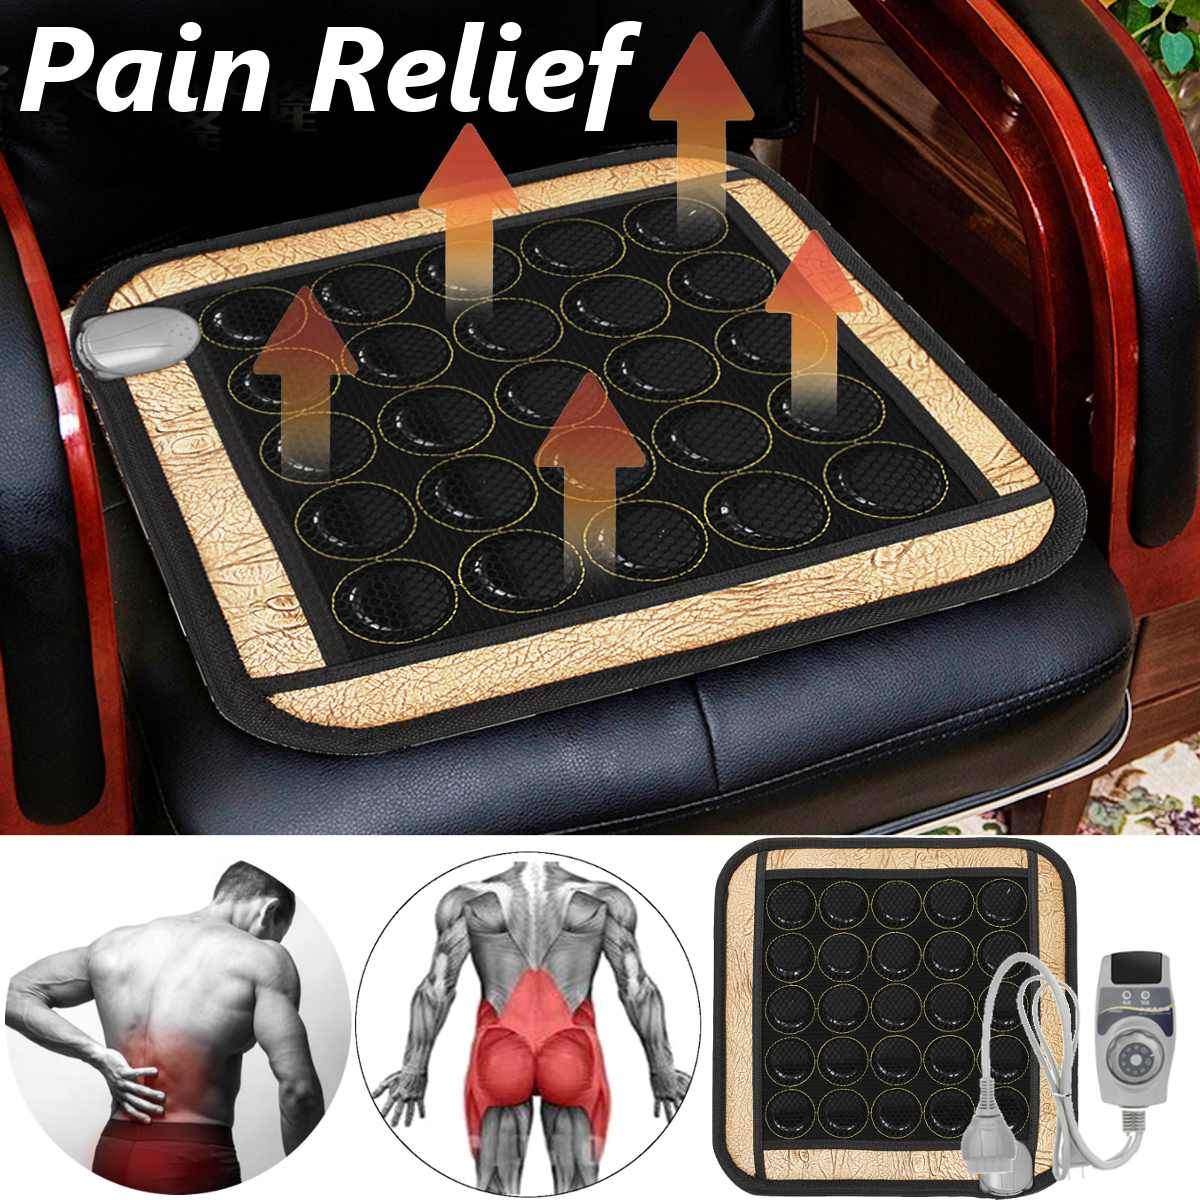 3 Type Heating Massage Mat Natural Jade Stone Pads Infrared Tourmaline Seat Pad Pain Relief Therapy Body Muscle Office  Home Car